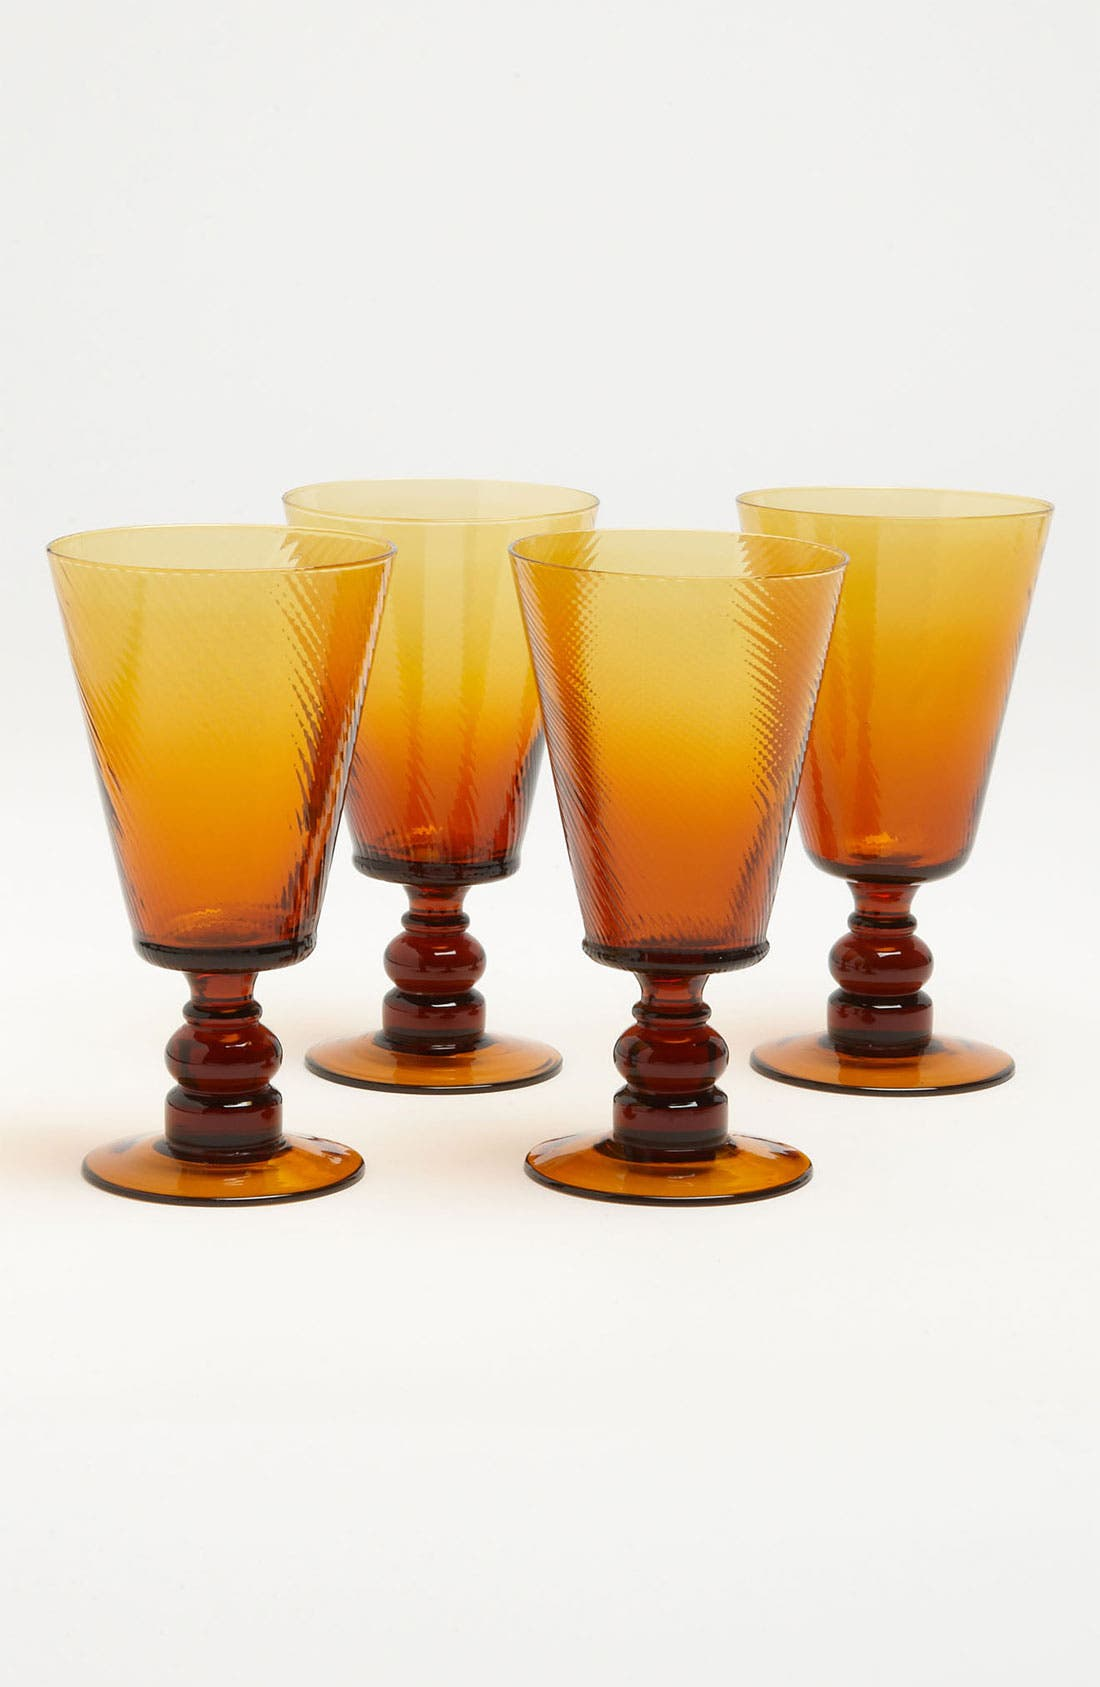 Main Image - 'Roma' Goblets (Set of 4)